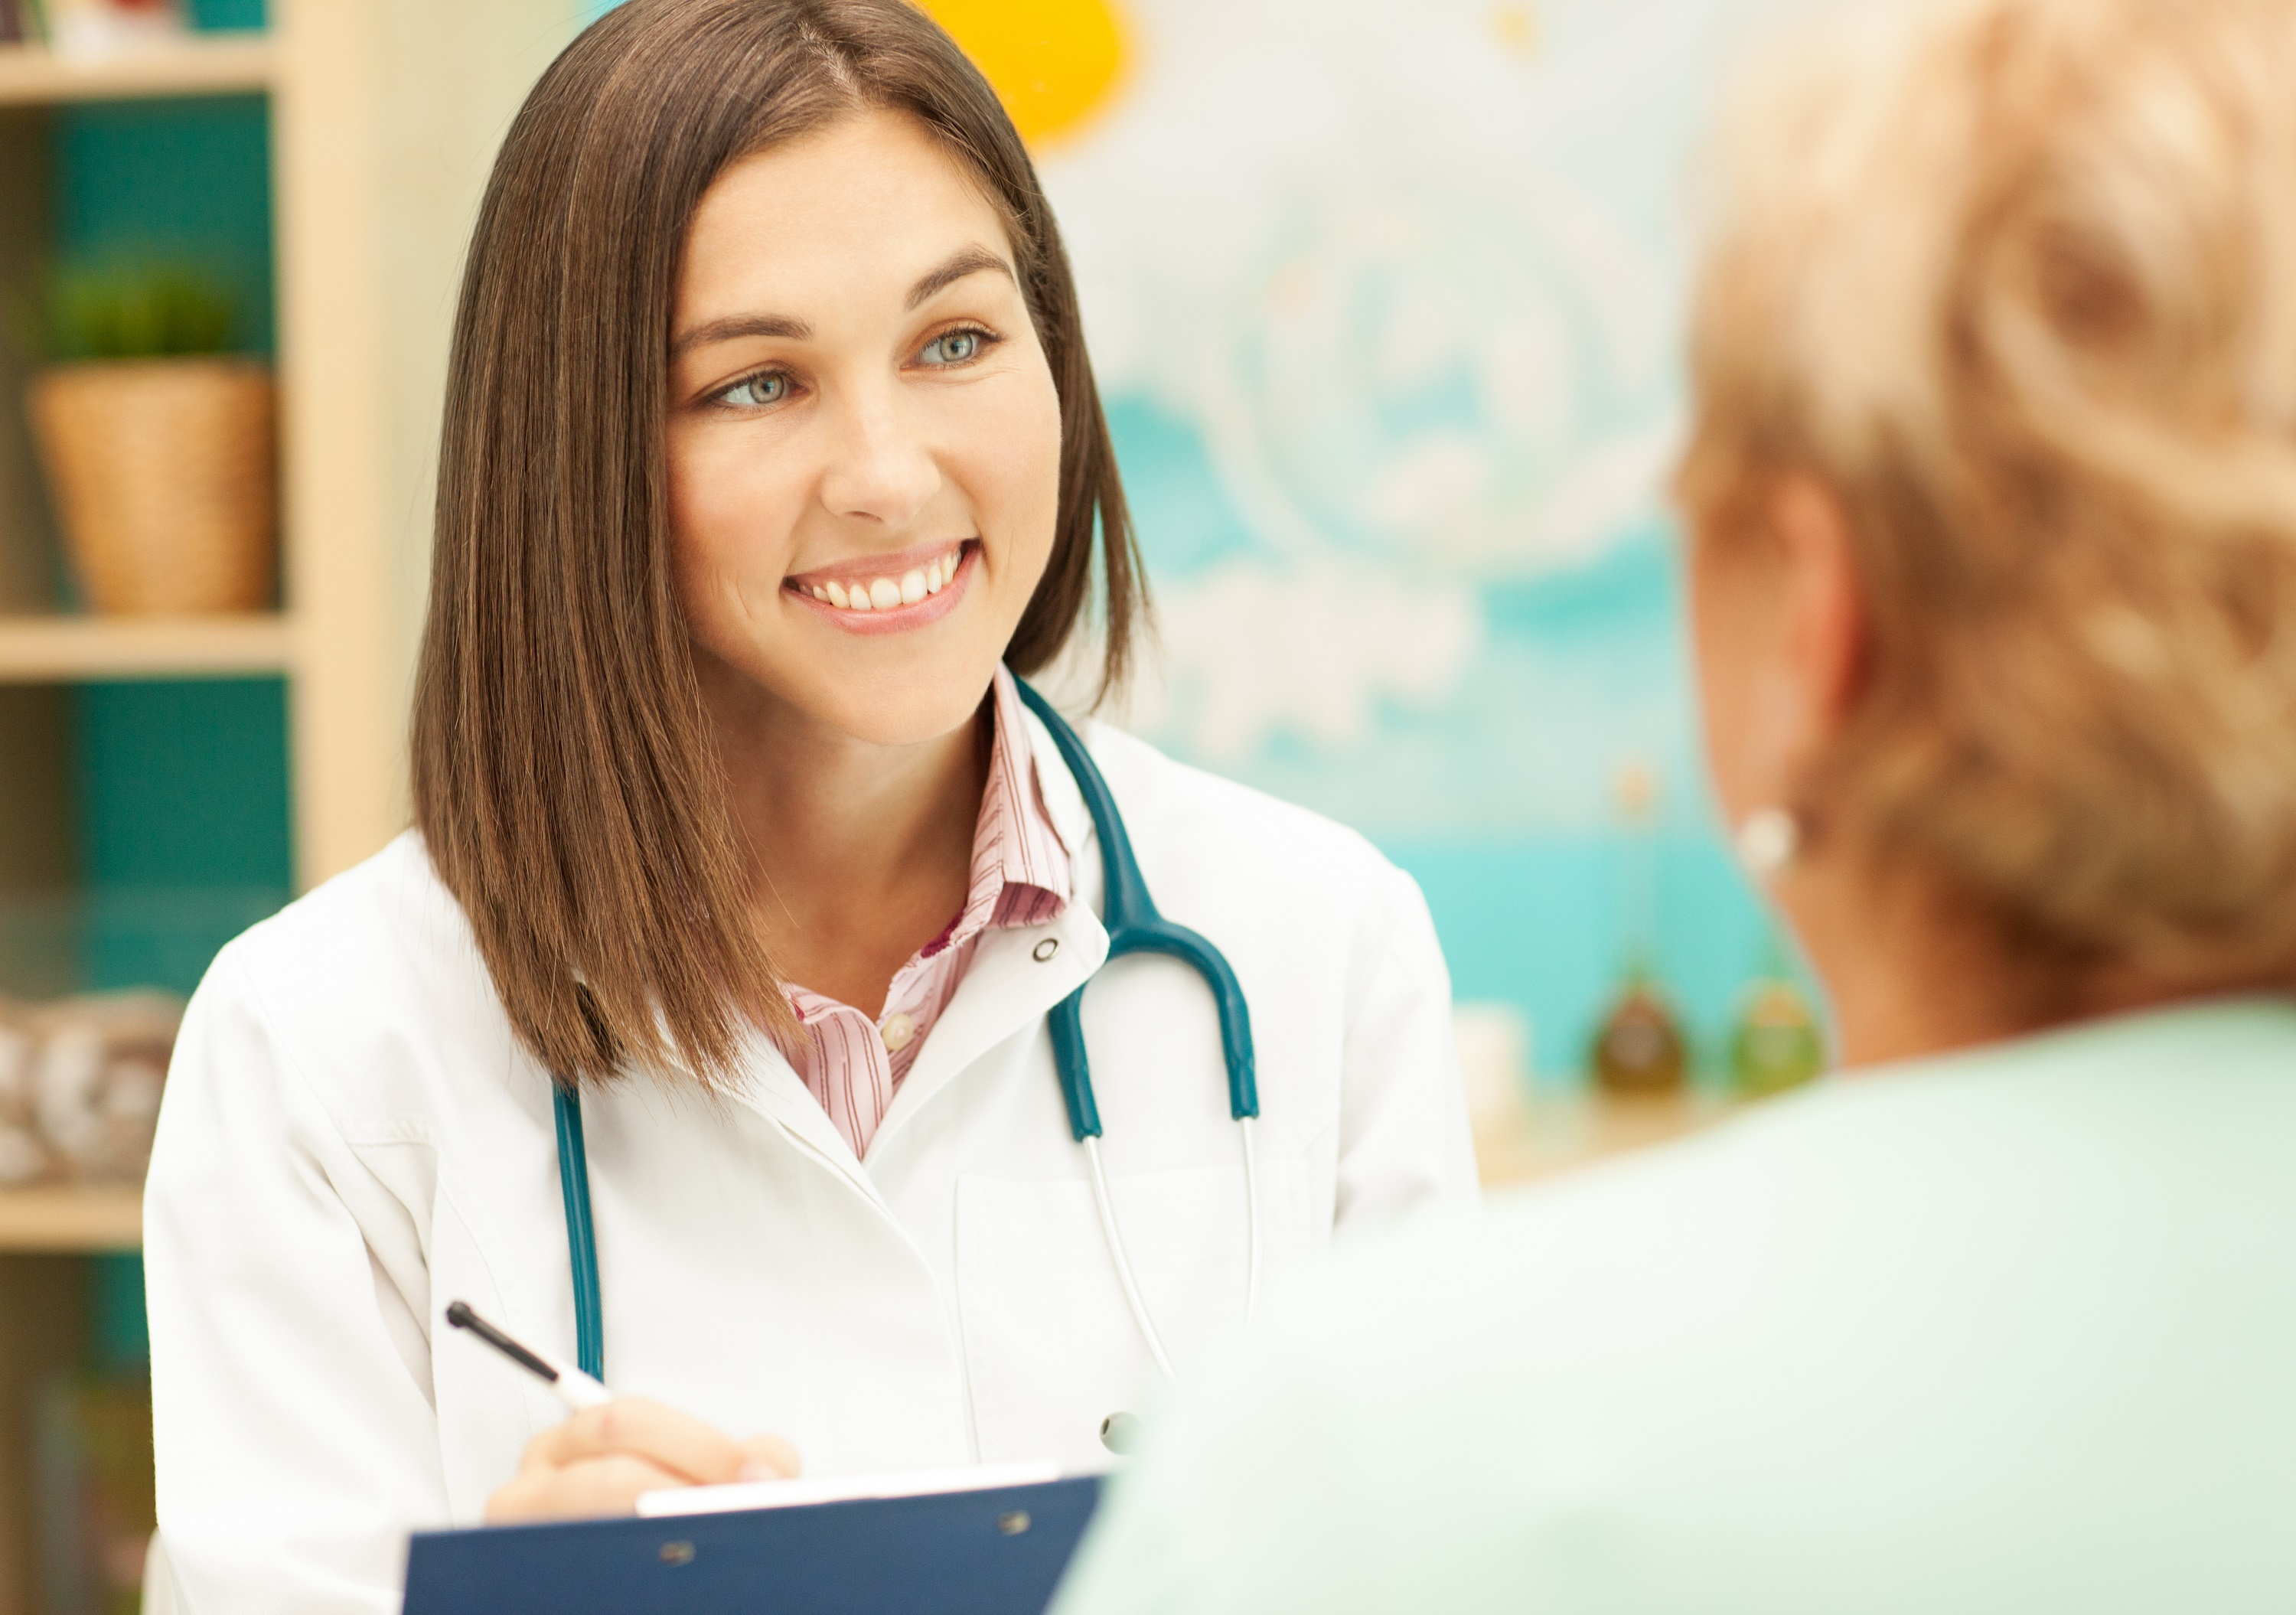 Smiling doctor talking to her patient.